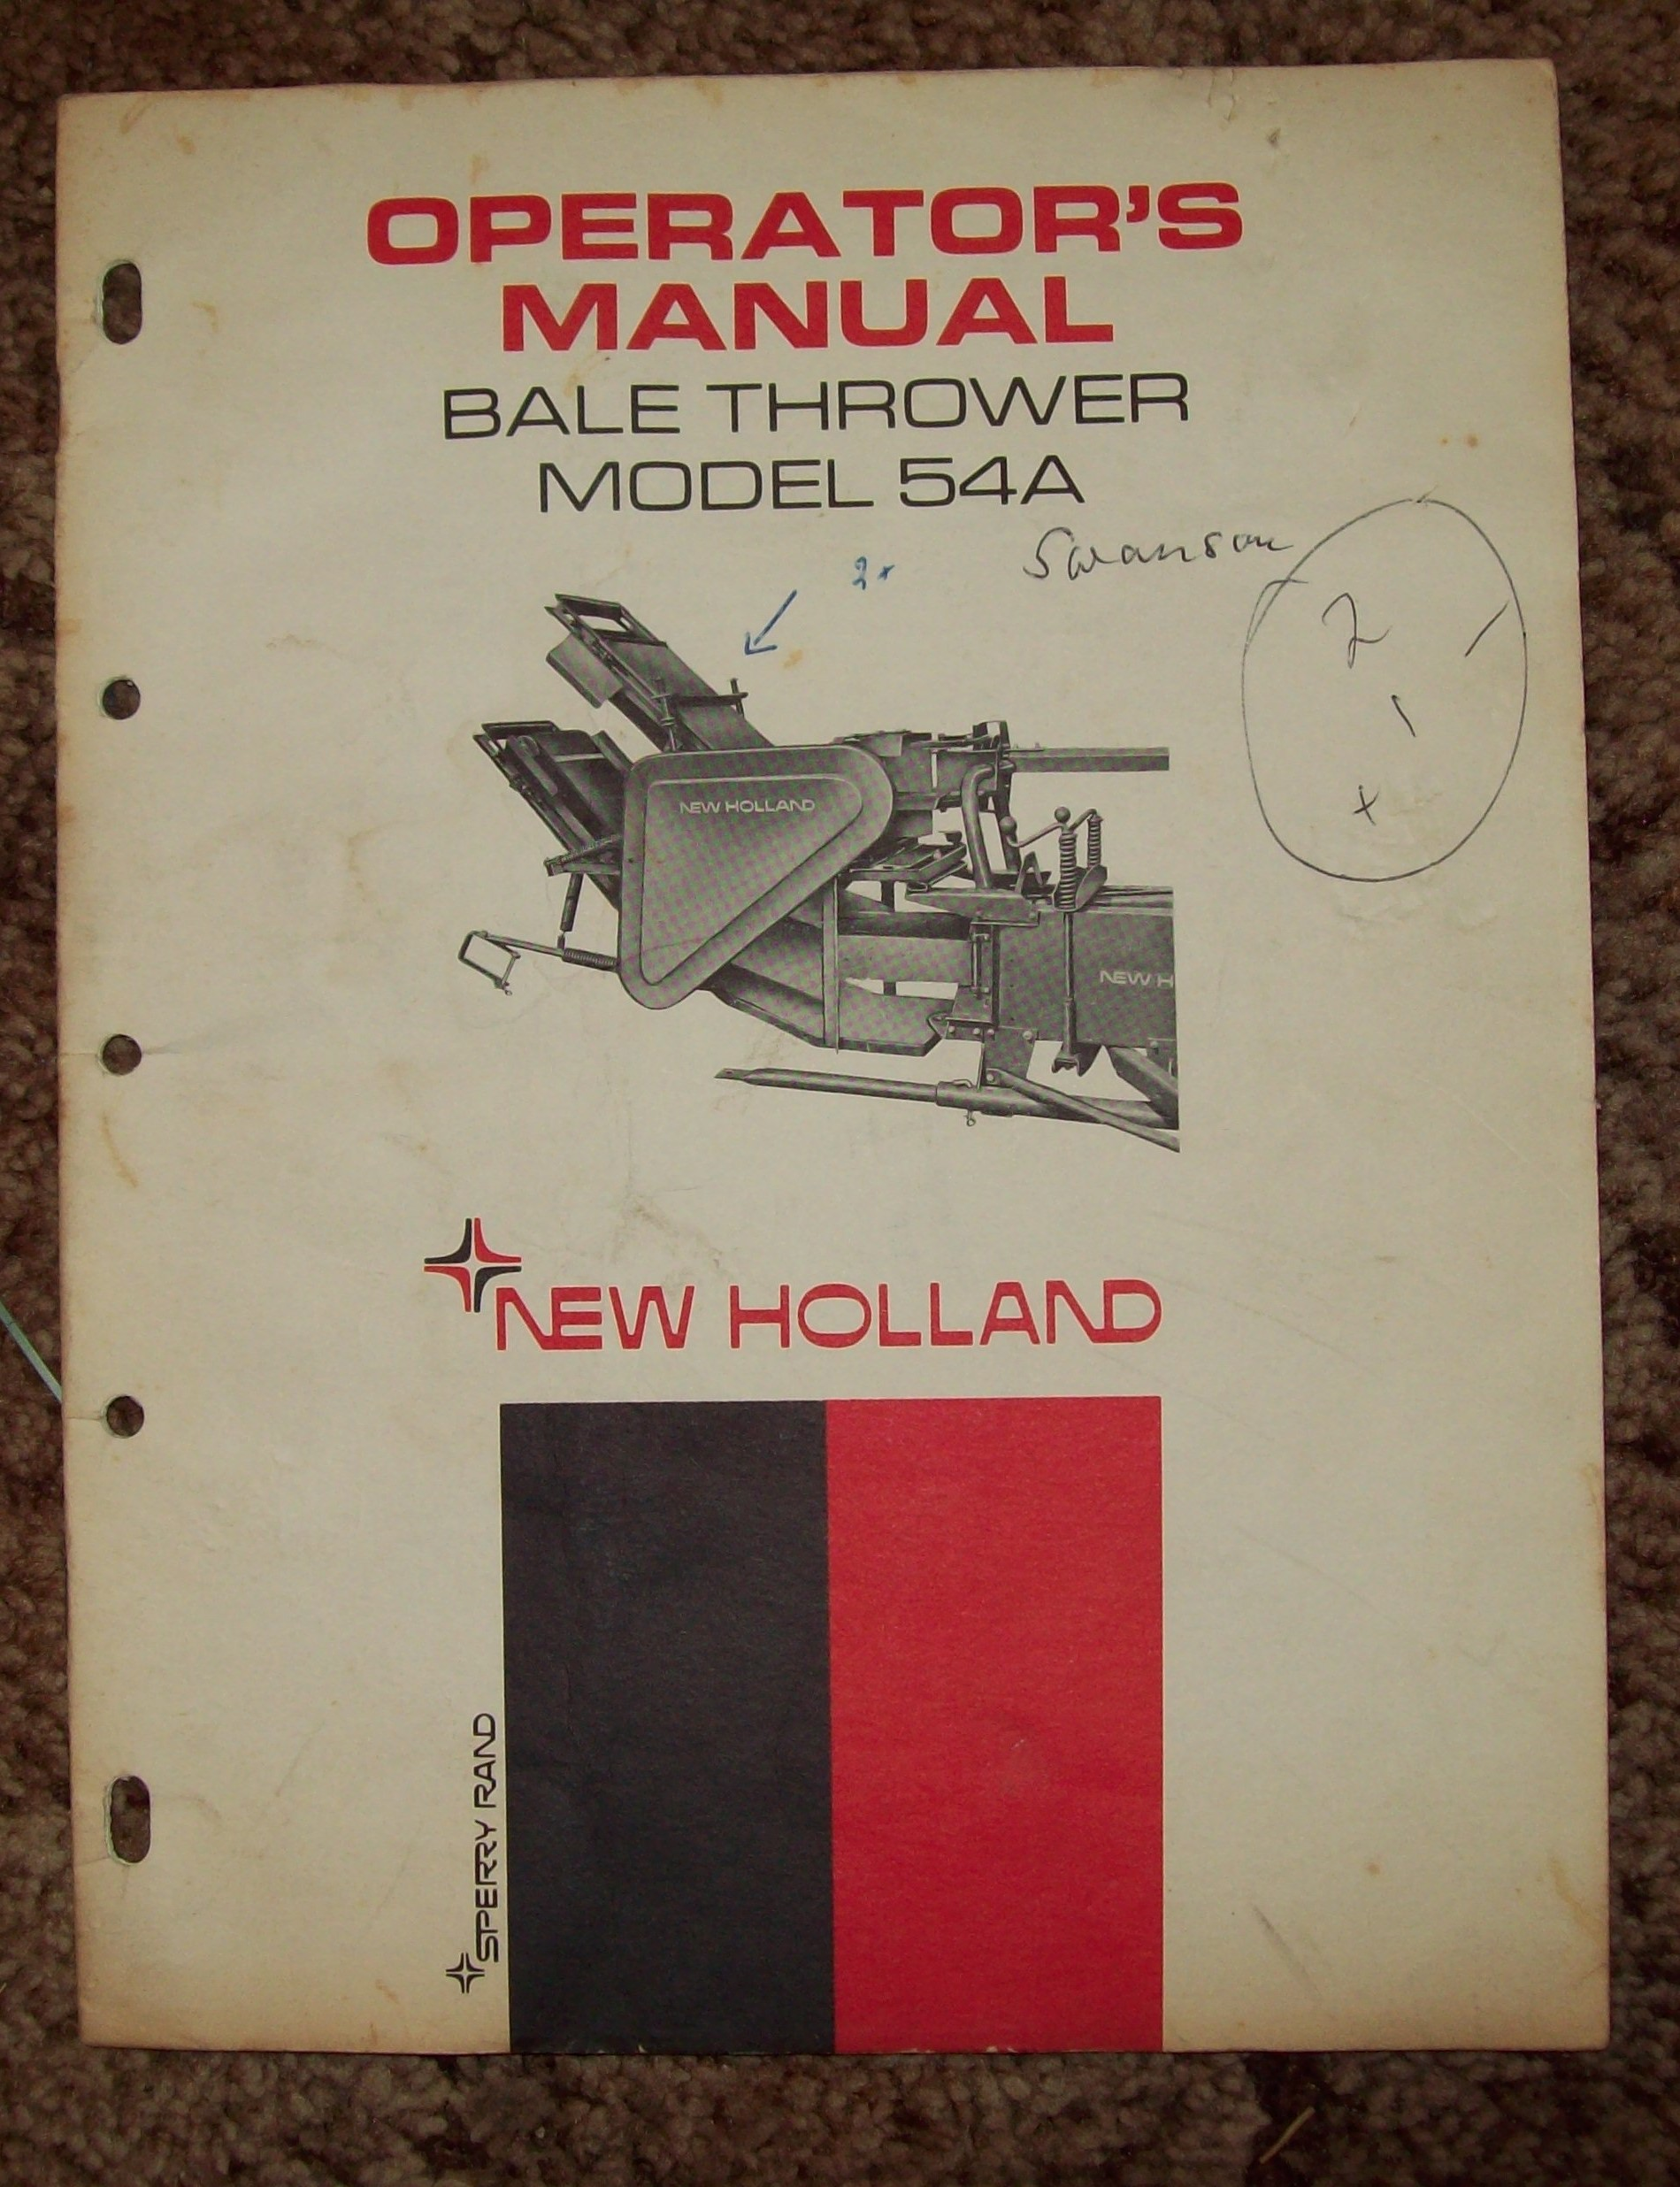 Erics Machinery Sales Repair John Deere Bale Trak Wiring Diagram New Holland Model 54a Thrower Operators Manual Copyright 1968 14 Pages Cover Shows Wrinkles And Creases Smudges Along With Writing On Front